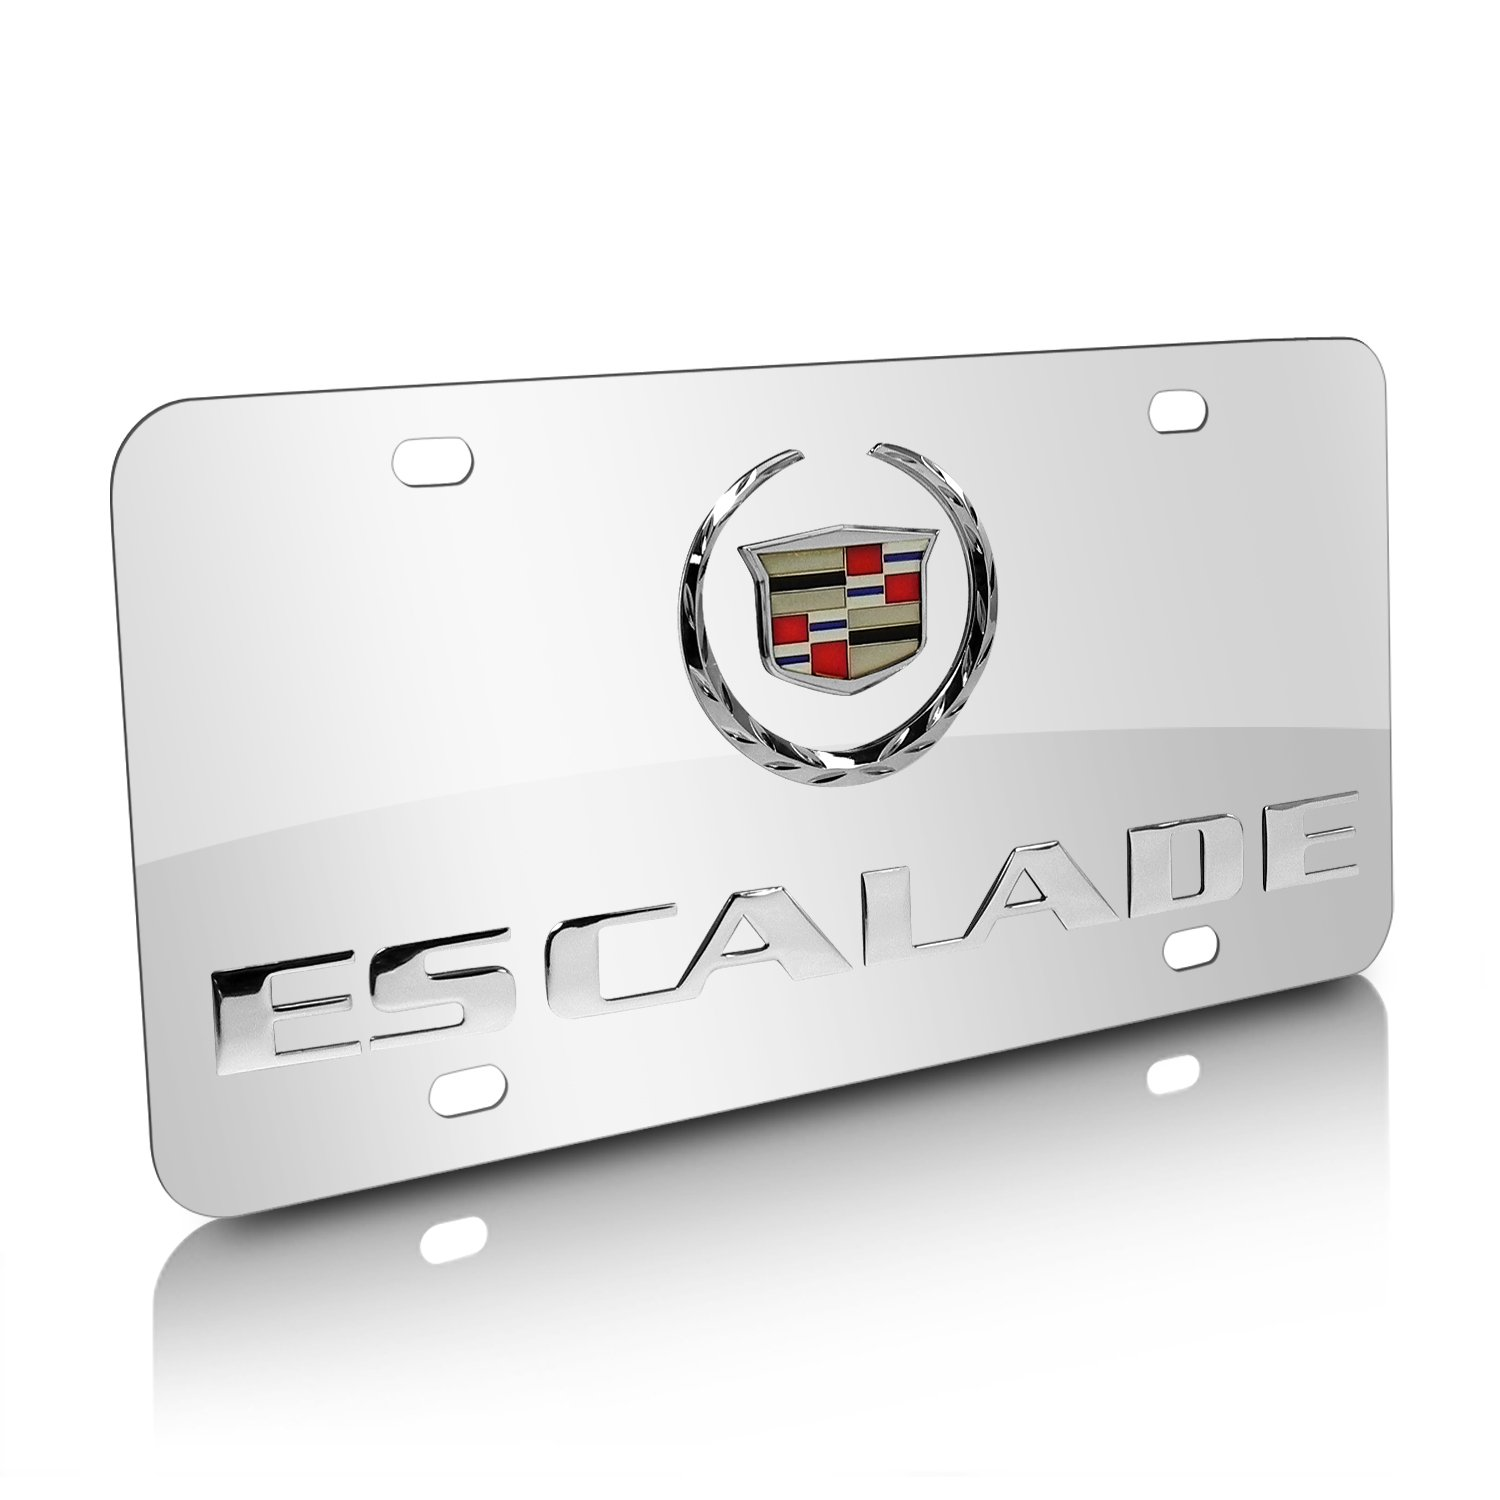 Amazon.com: Cadillac Escalade Chrome Stainless Steel License Plate ...